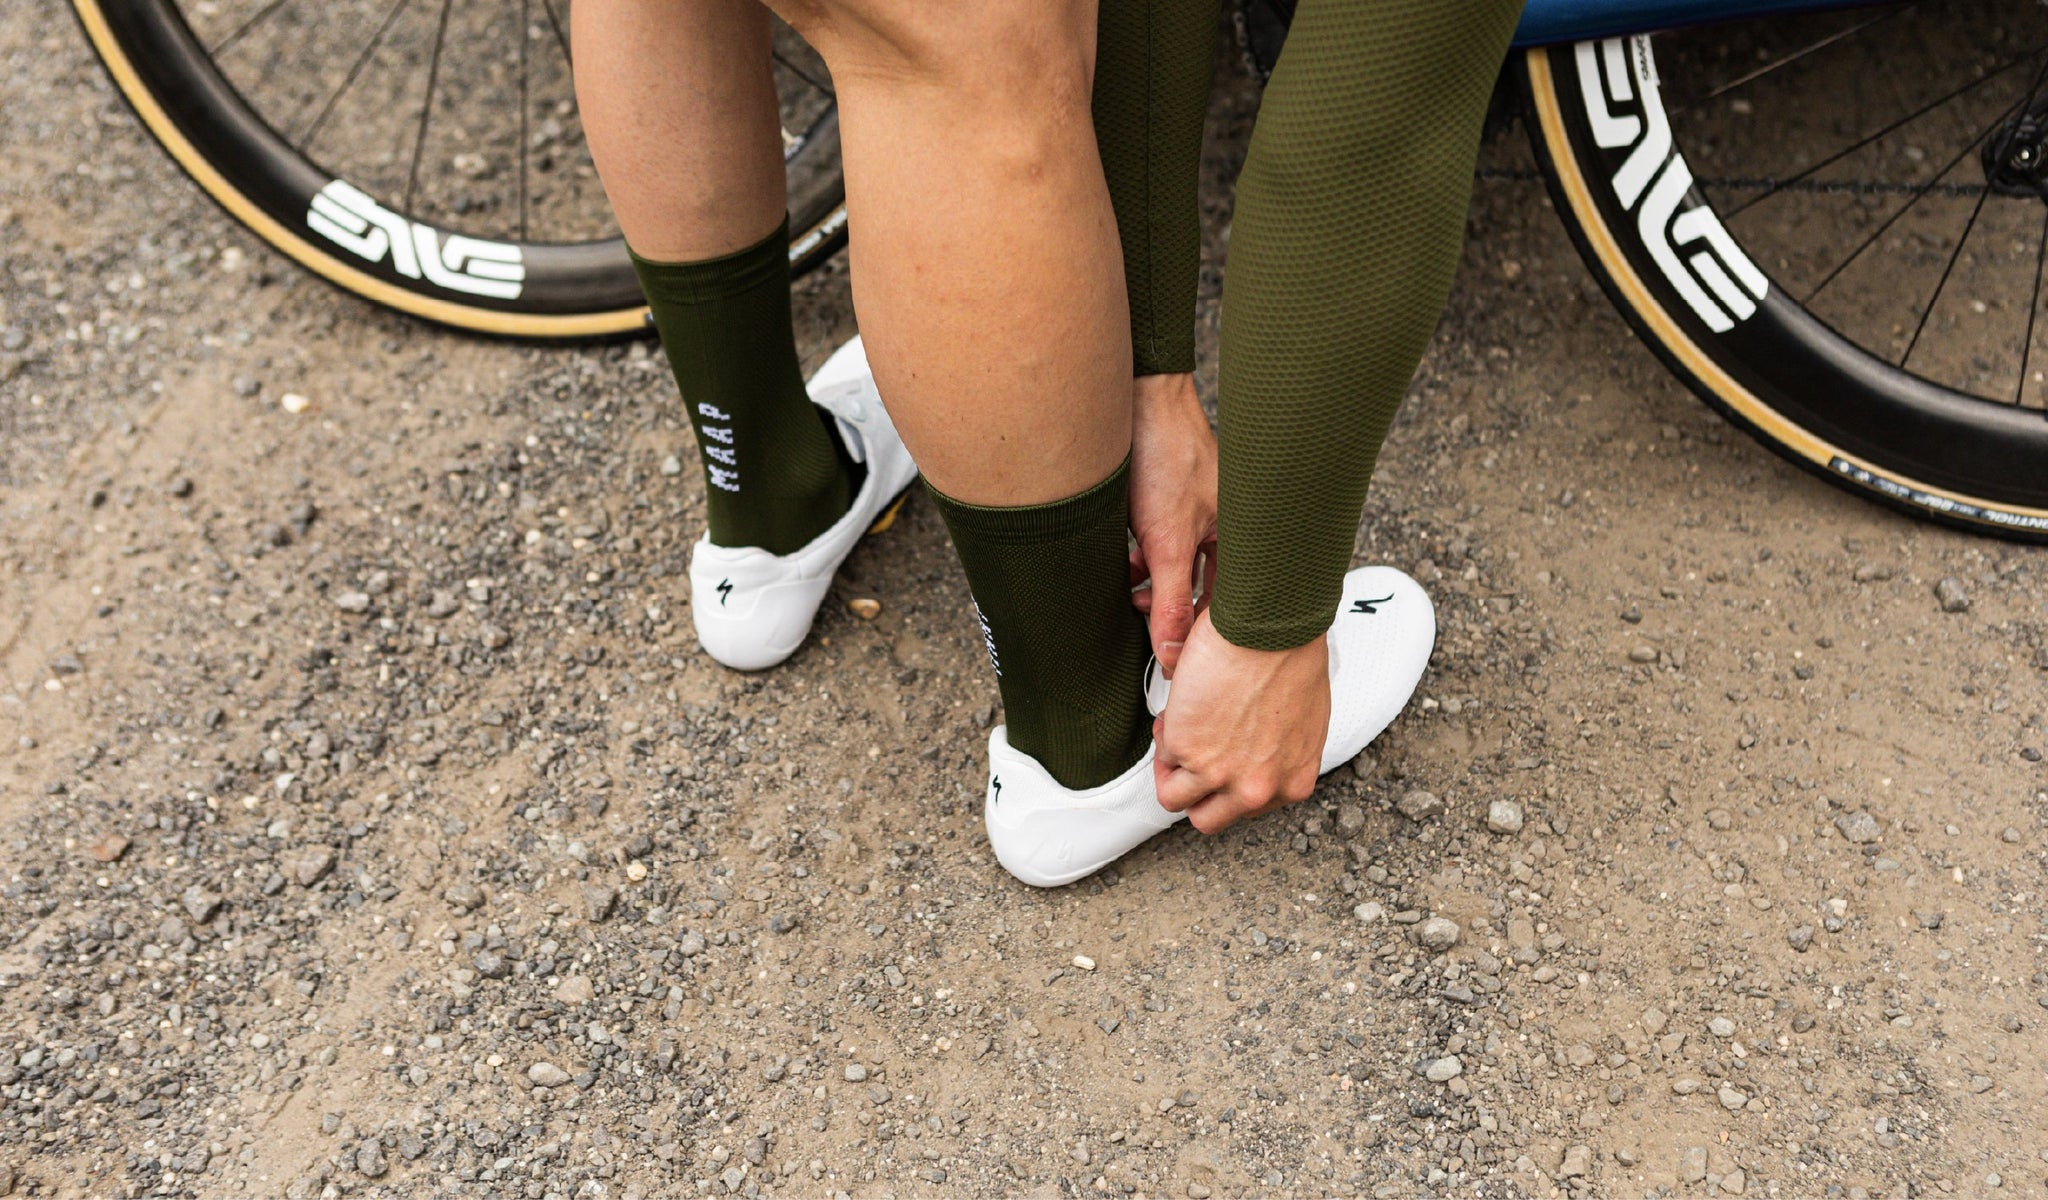 MAAP Division Socks in Military Green for cycling in warm weather conditions.